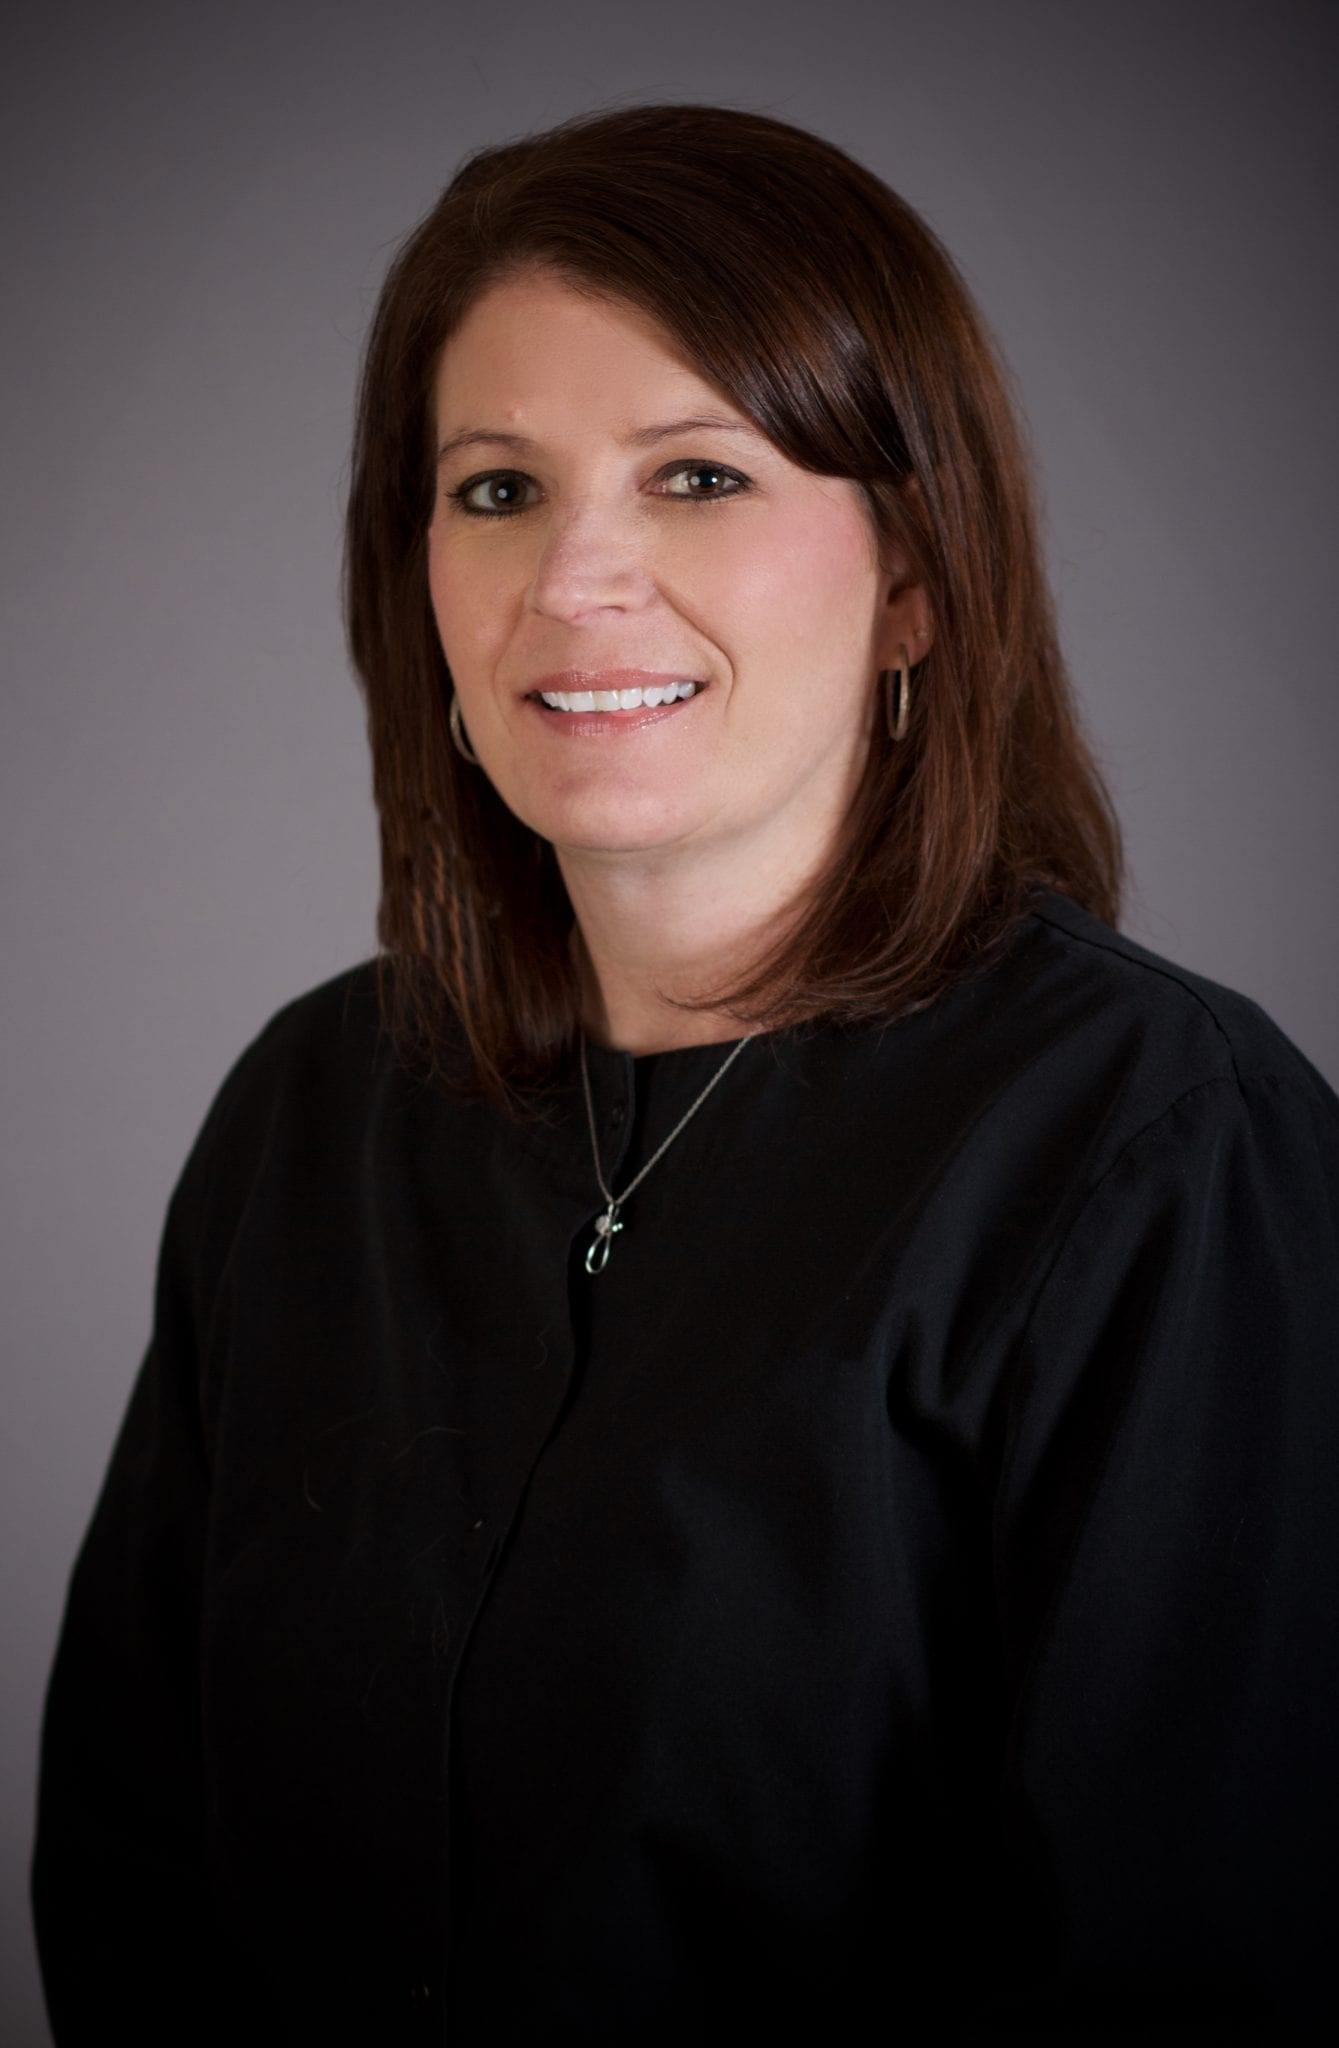 Susan who is an Administrative Assistant at Birdwell and Guffey Family Dentistry in South Knoxville